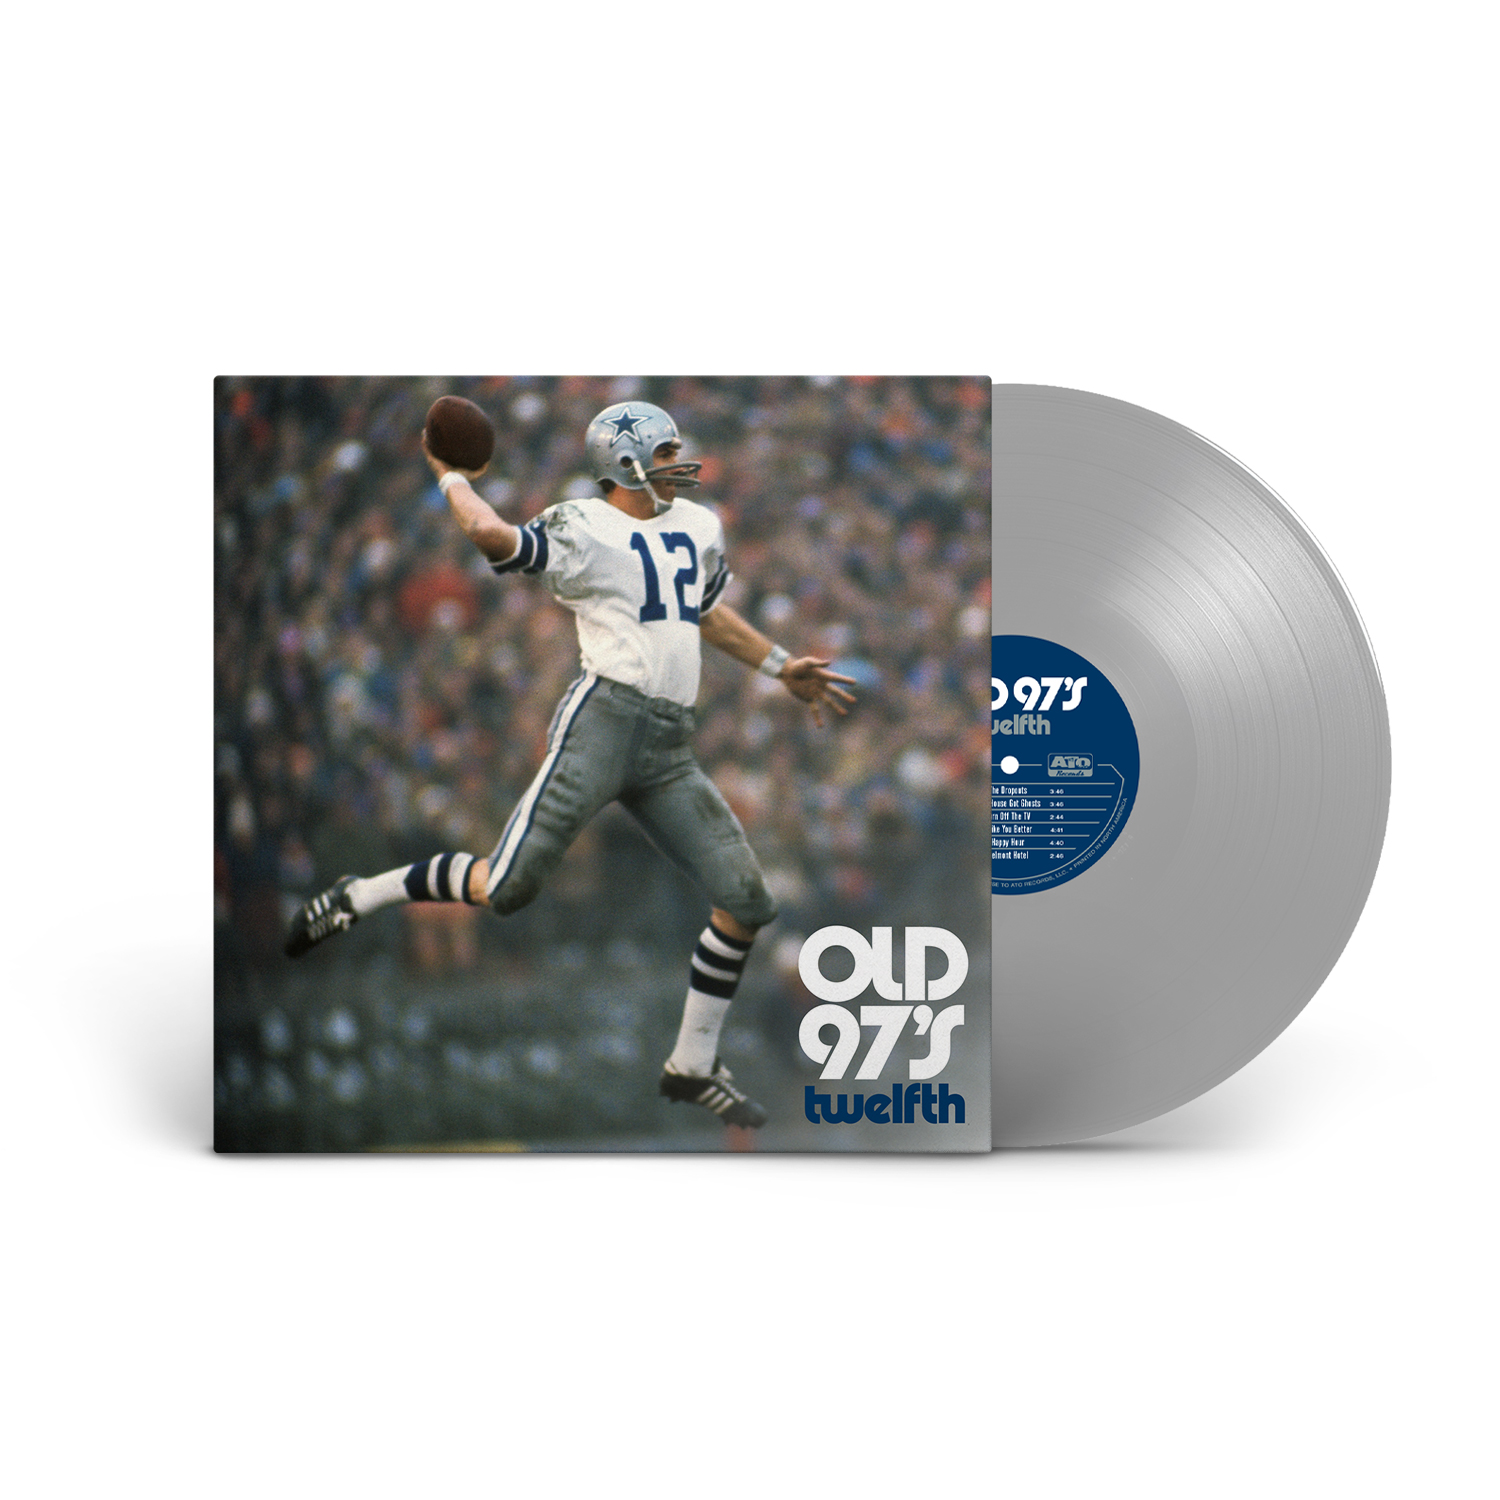 Old 97's - Twelfth Silver Colored Vinyl